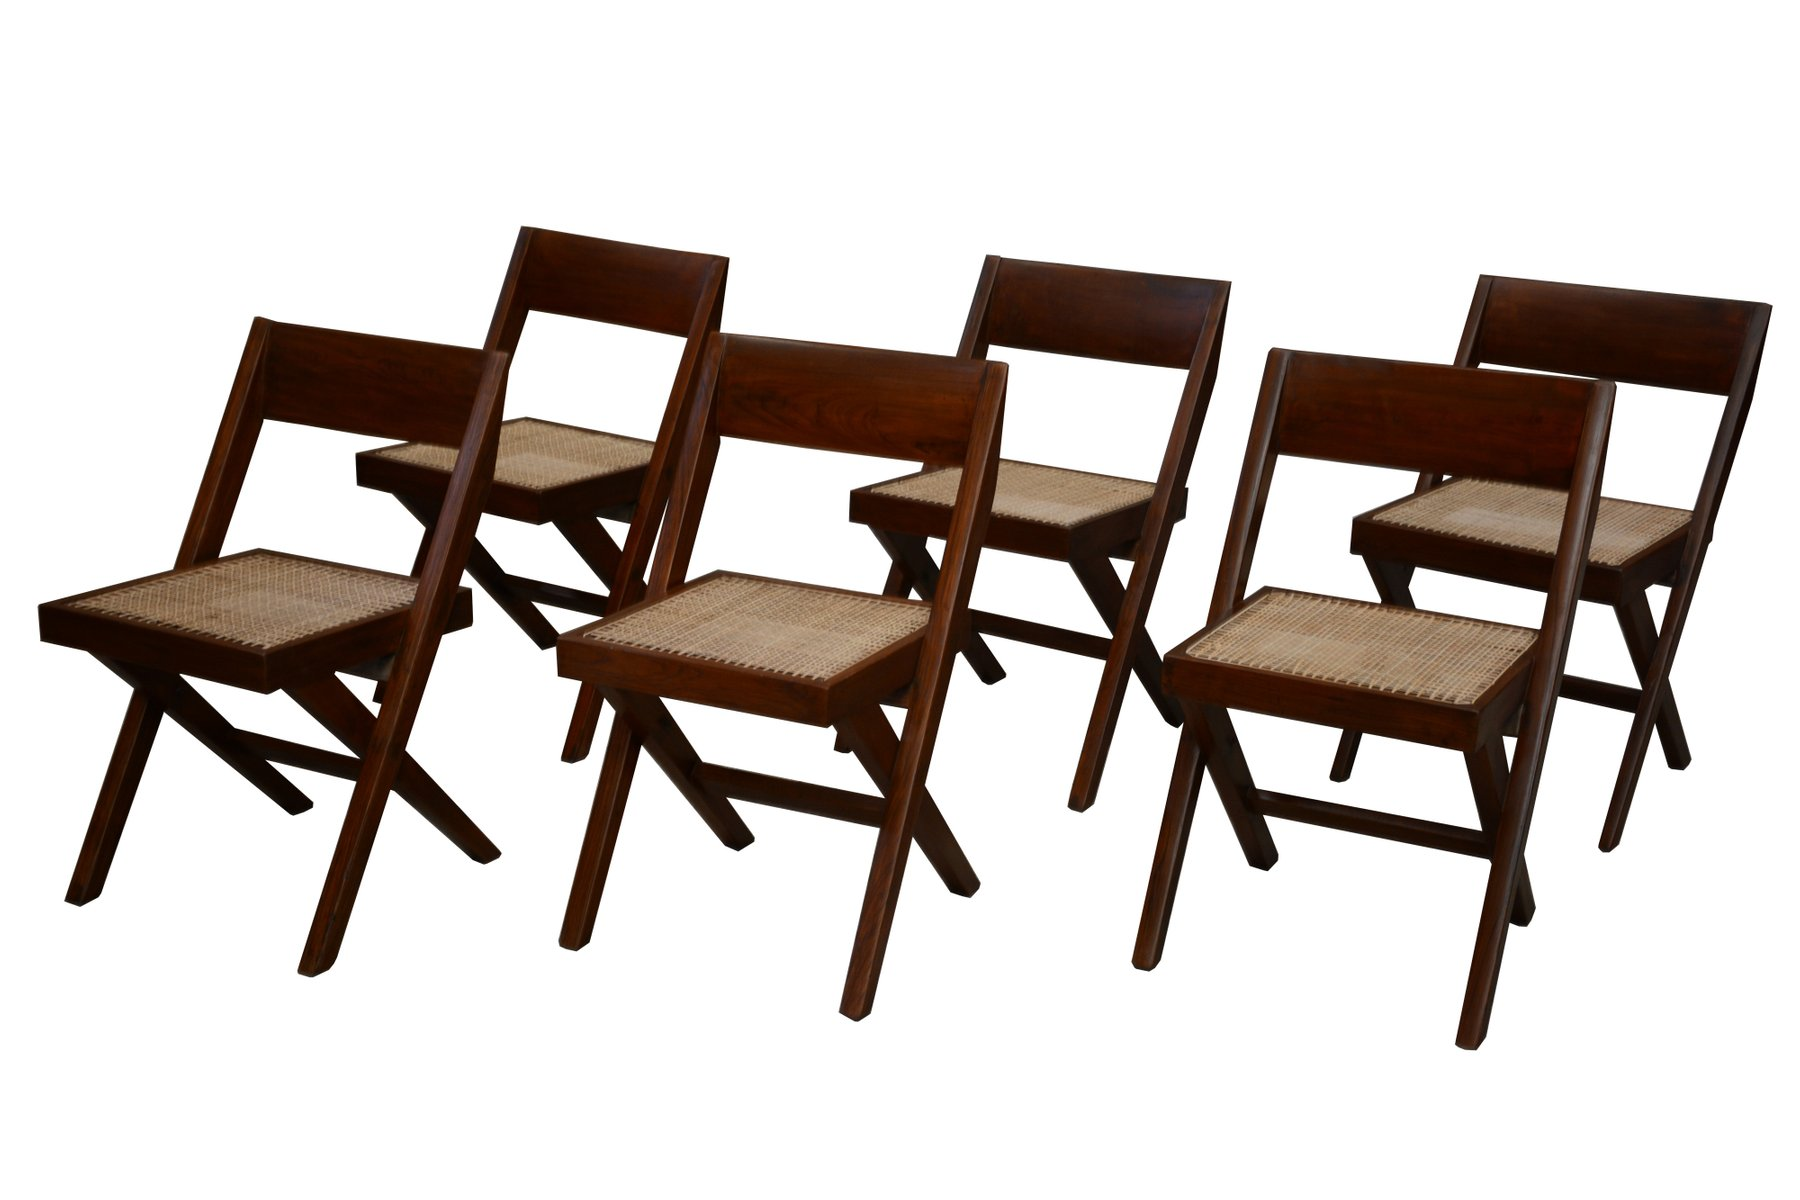 Library Chairs by Pierre Jeanneret 1959 6er Set for sale at Pamono